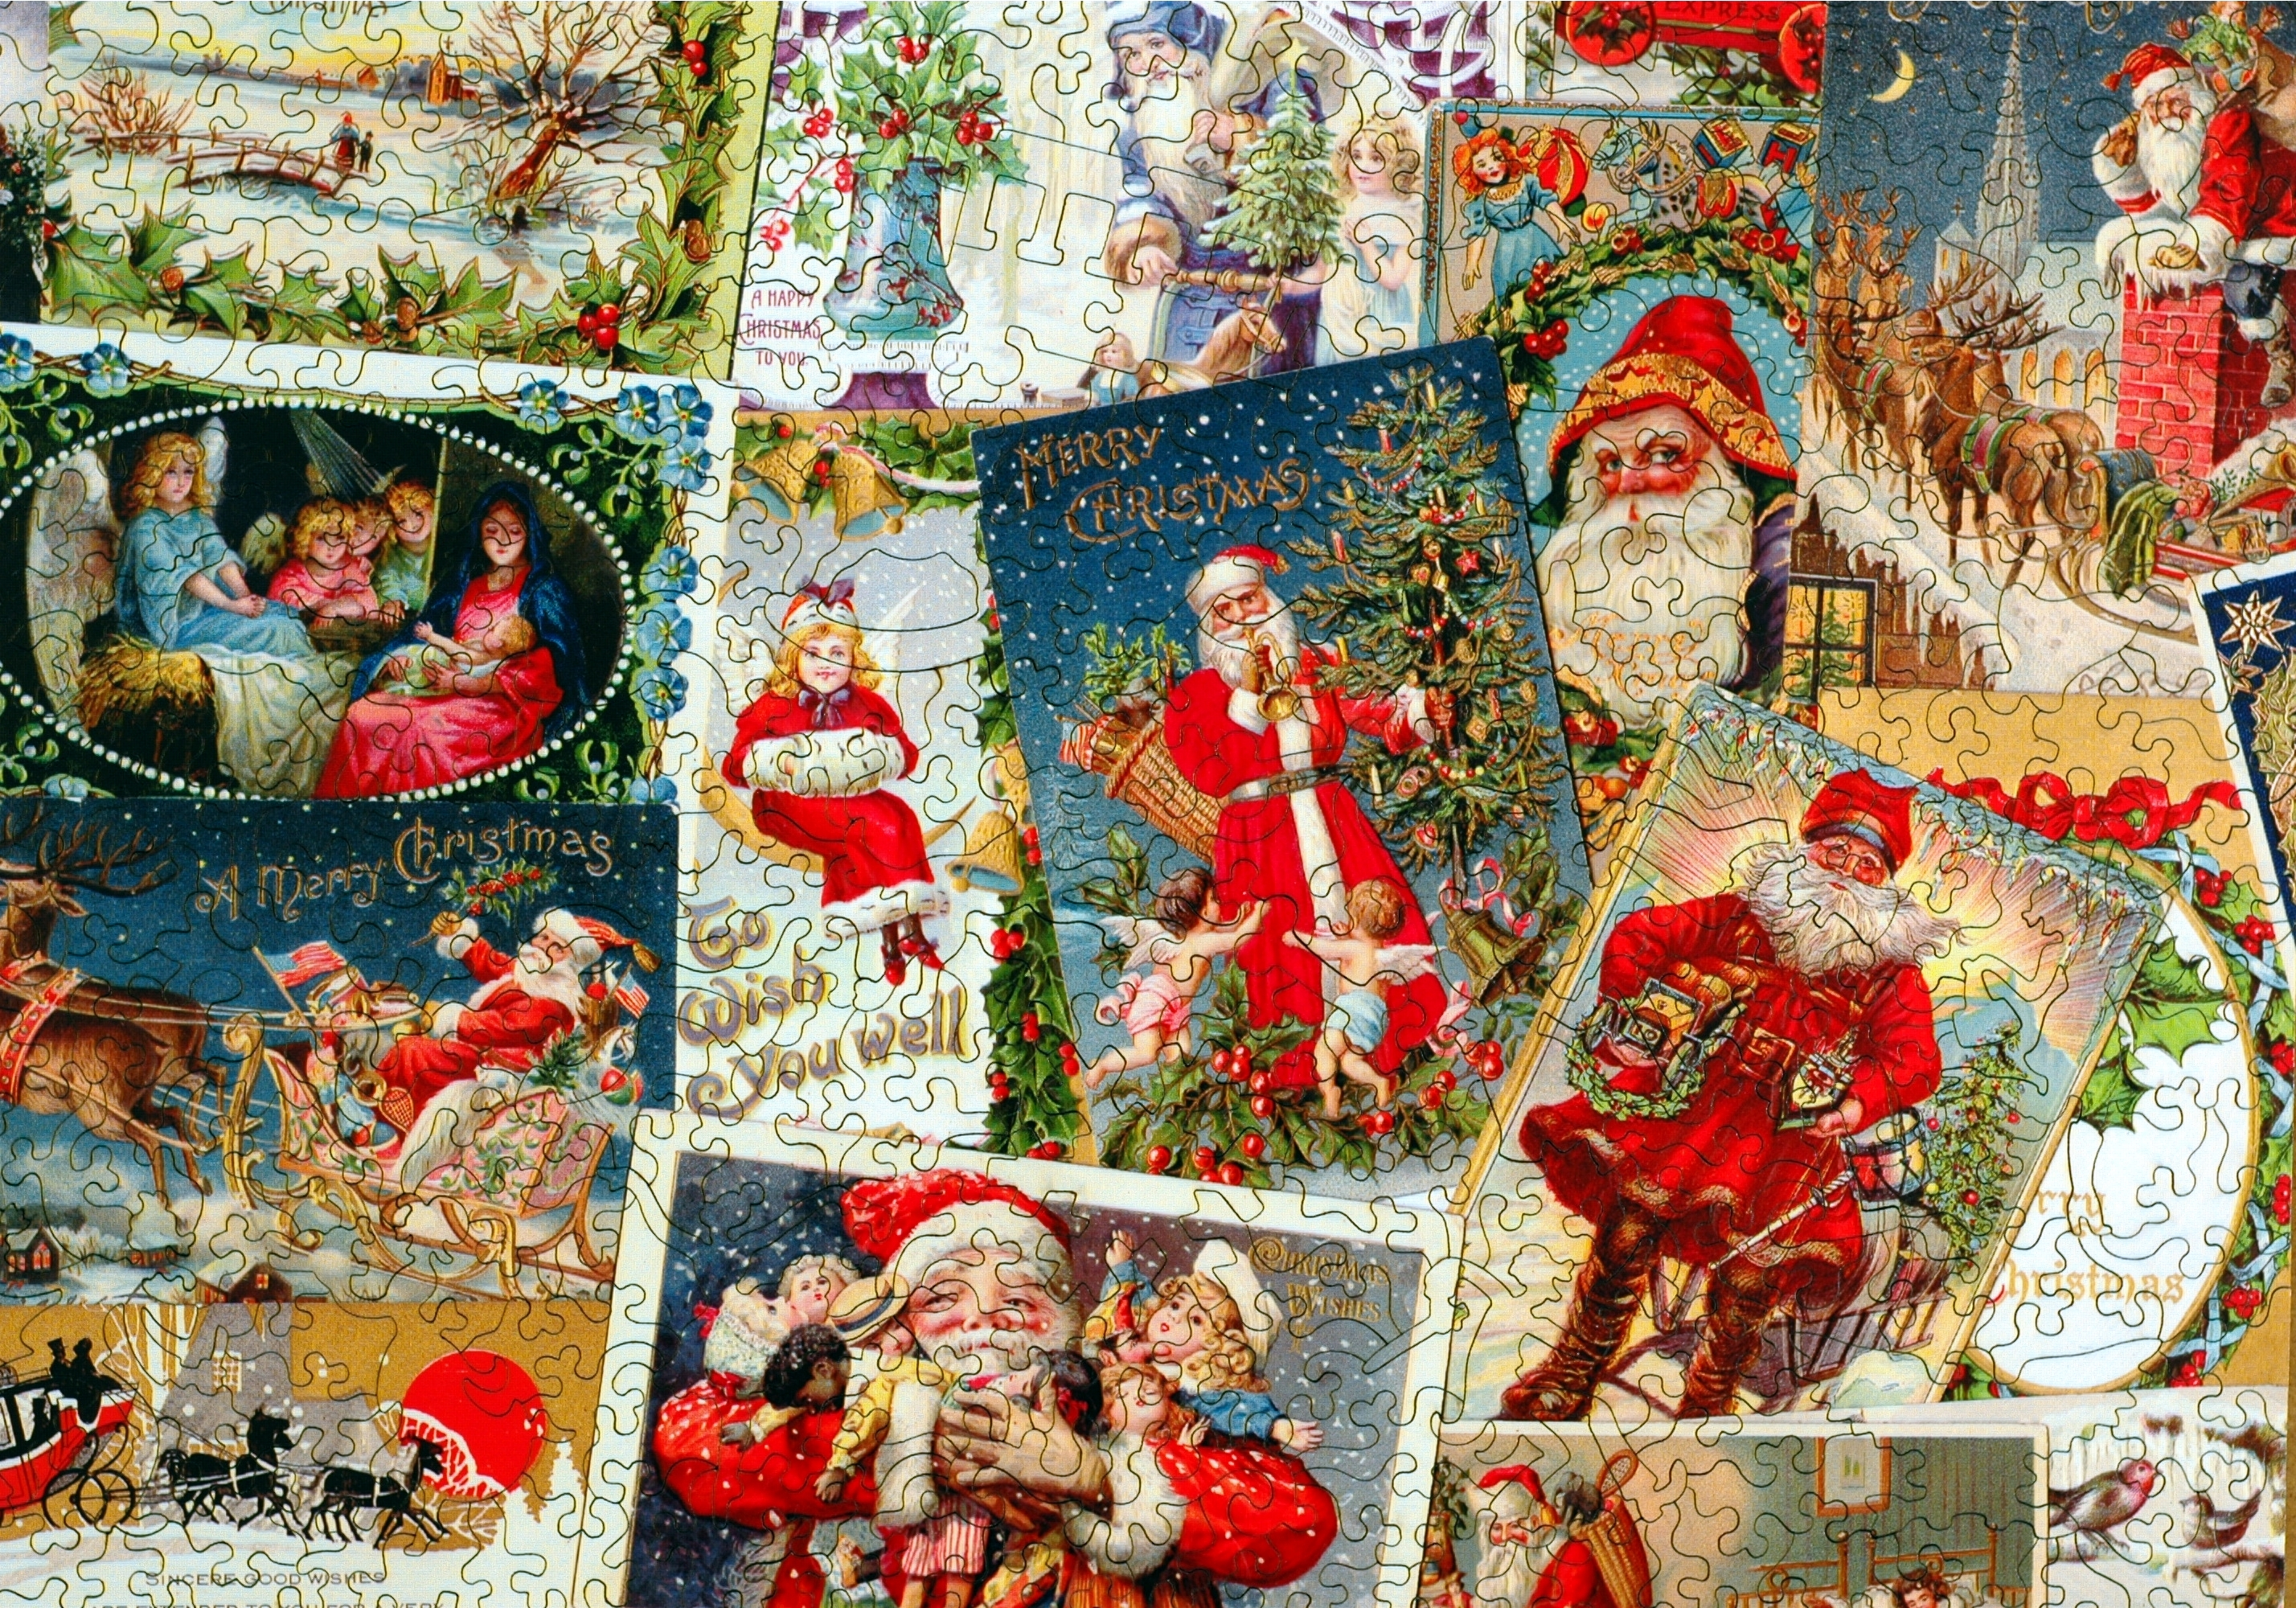 Fall Wooden Wallpaper Vintage Christmas Postcards Wooden Jigsaw Puzzle